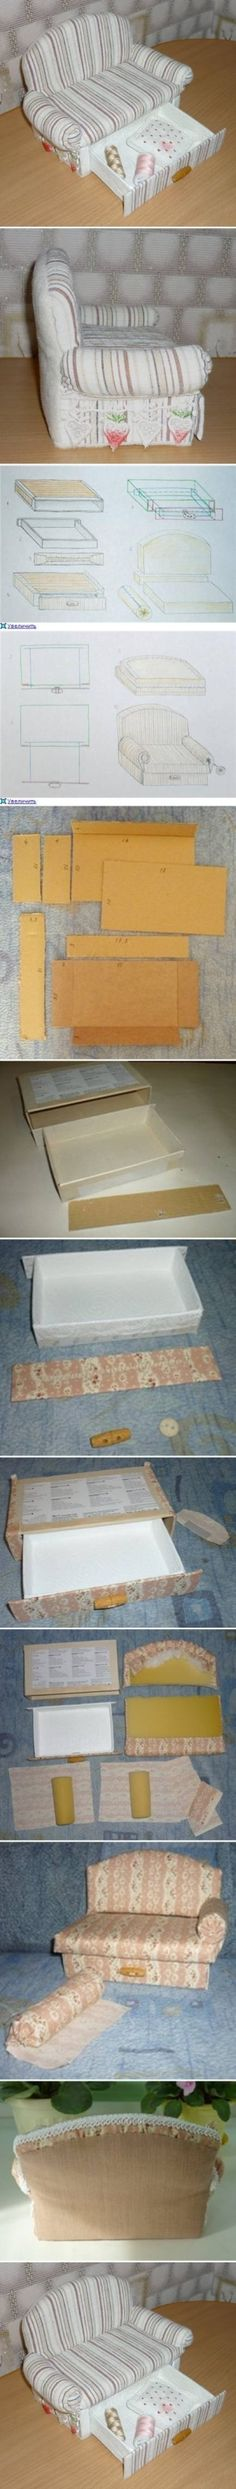 How to make Cardboard Sofa with Drawer storage unit step by step DIY tutorial instructions, How to, how to do, diy instructions, crafts, do by Mary Smith fSesz